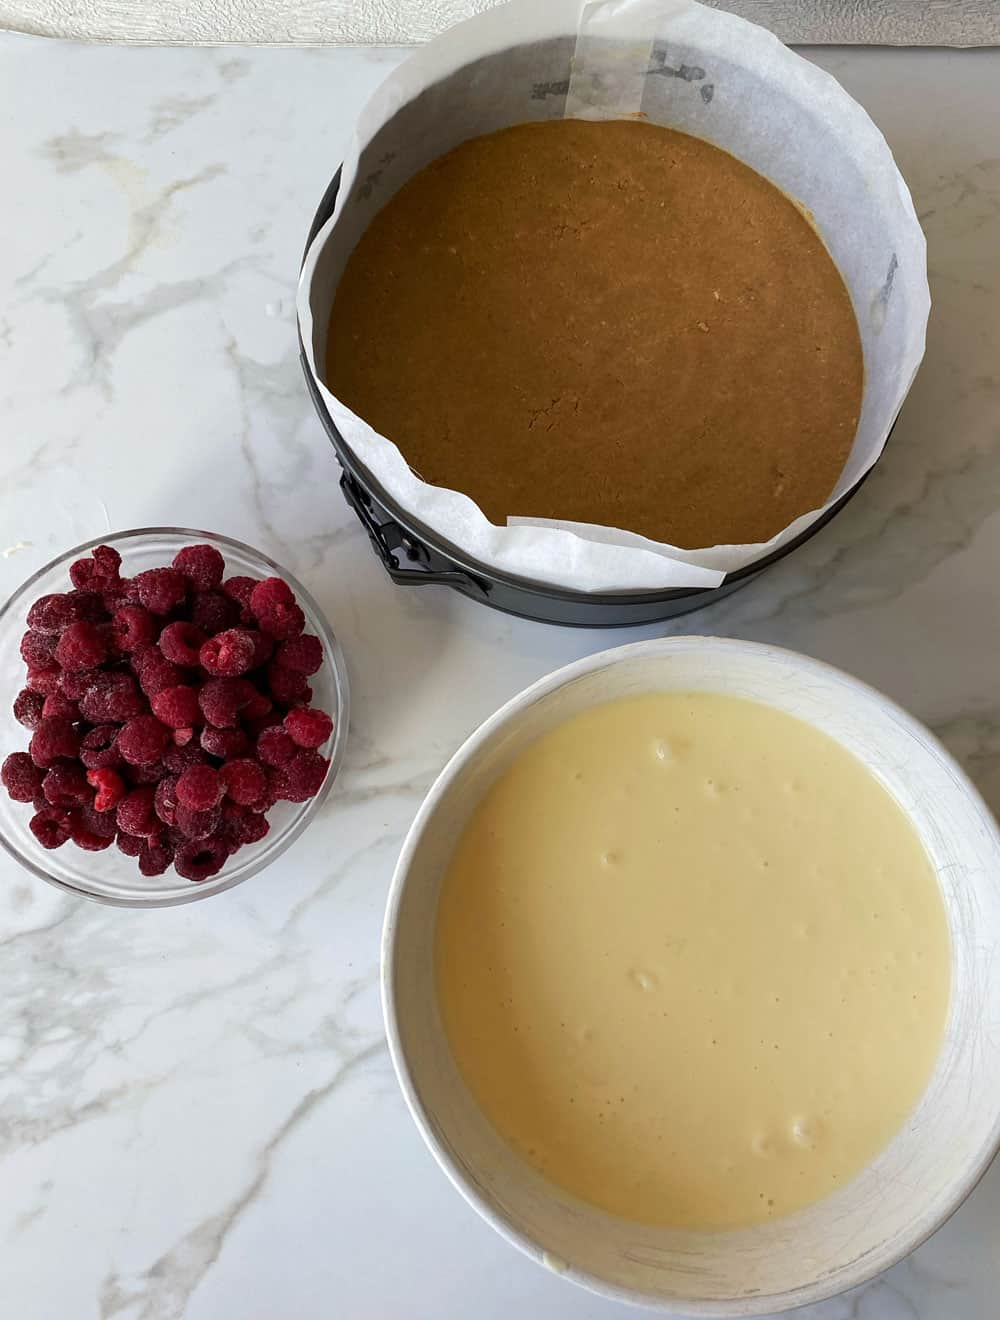 A bowl of frozen raspberries, a bowl of cream cheese mix and a lined cake tin sitting on a grey and white tile.